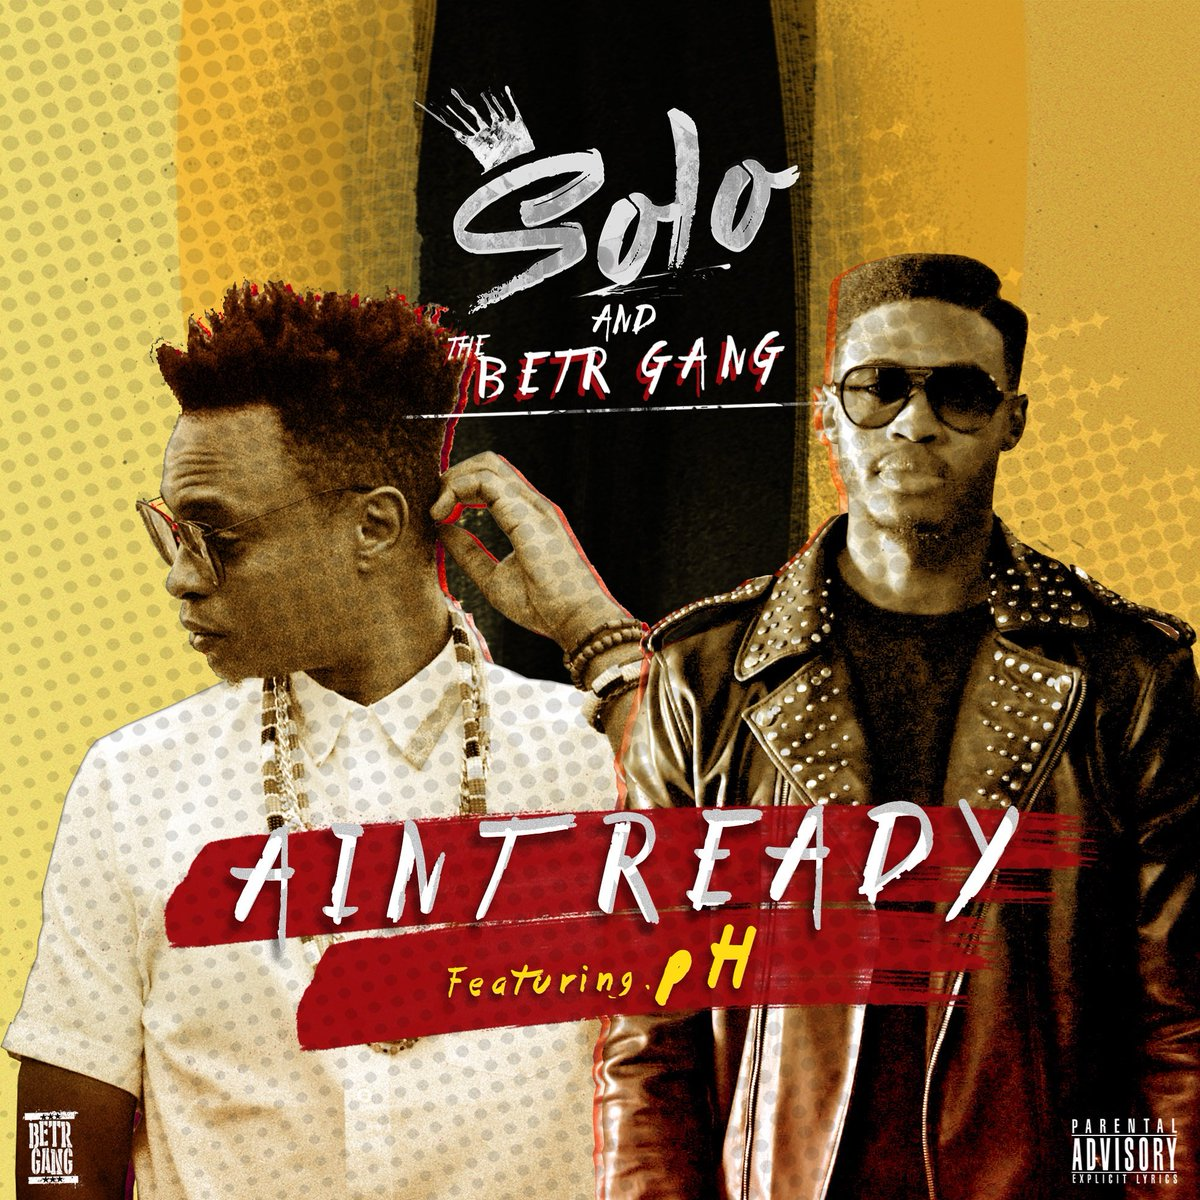 Solo & The BETR Gang – Ain't Ready Ft. P.H.